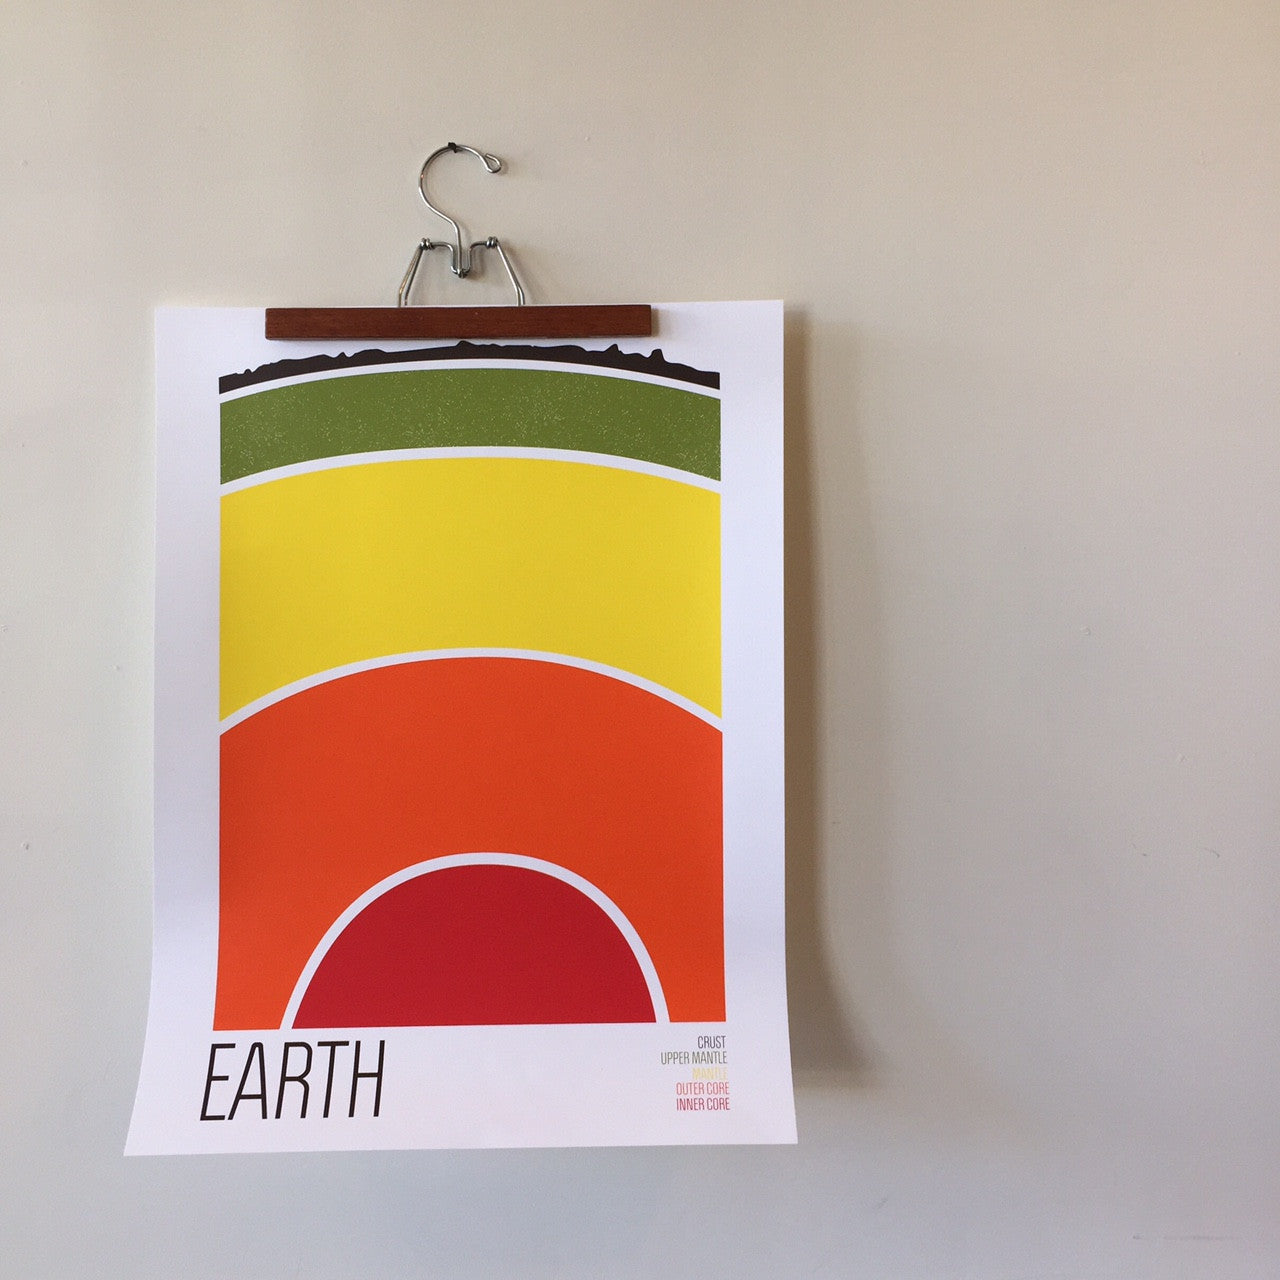 EARTH Screenprint by Brainstorm - Upstate MN